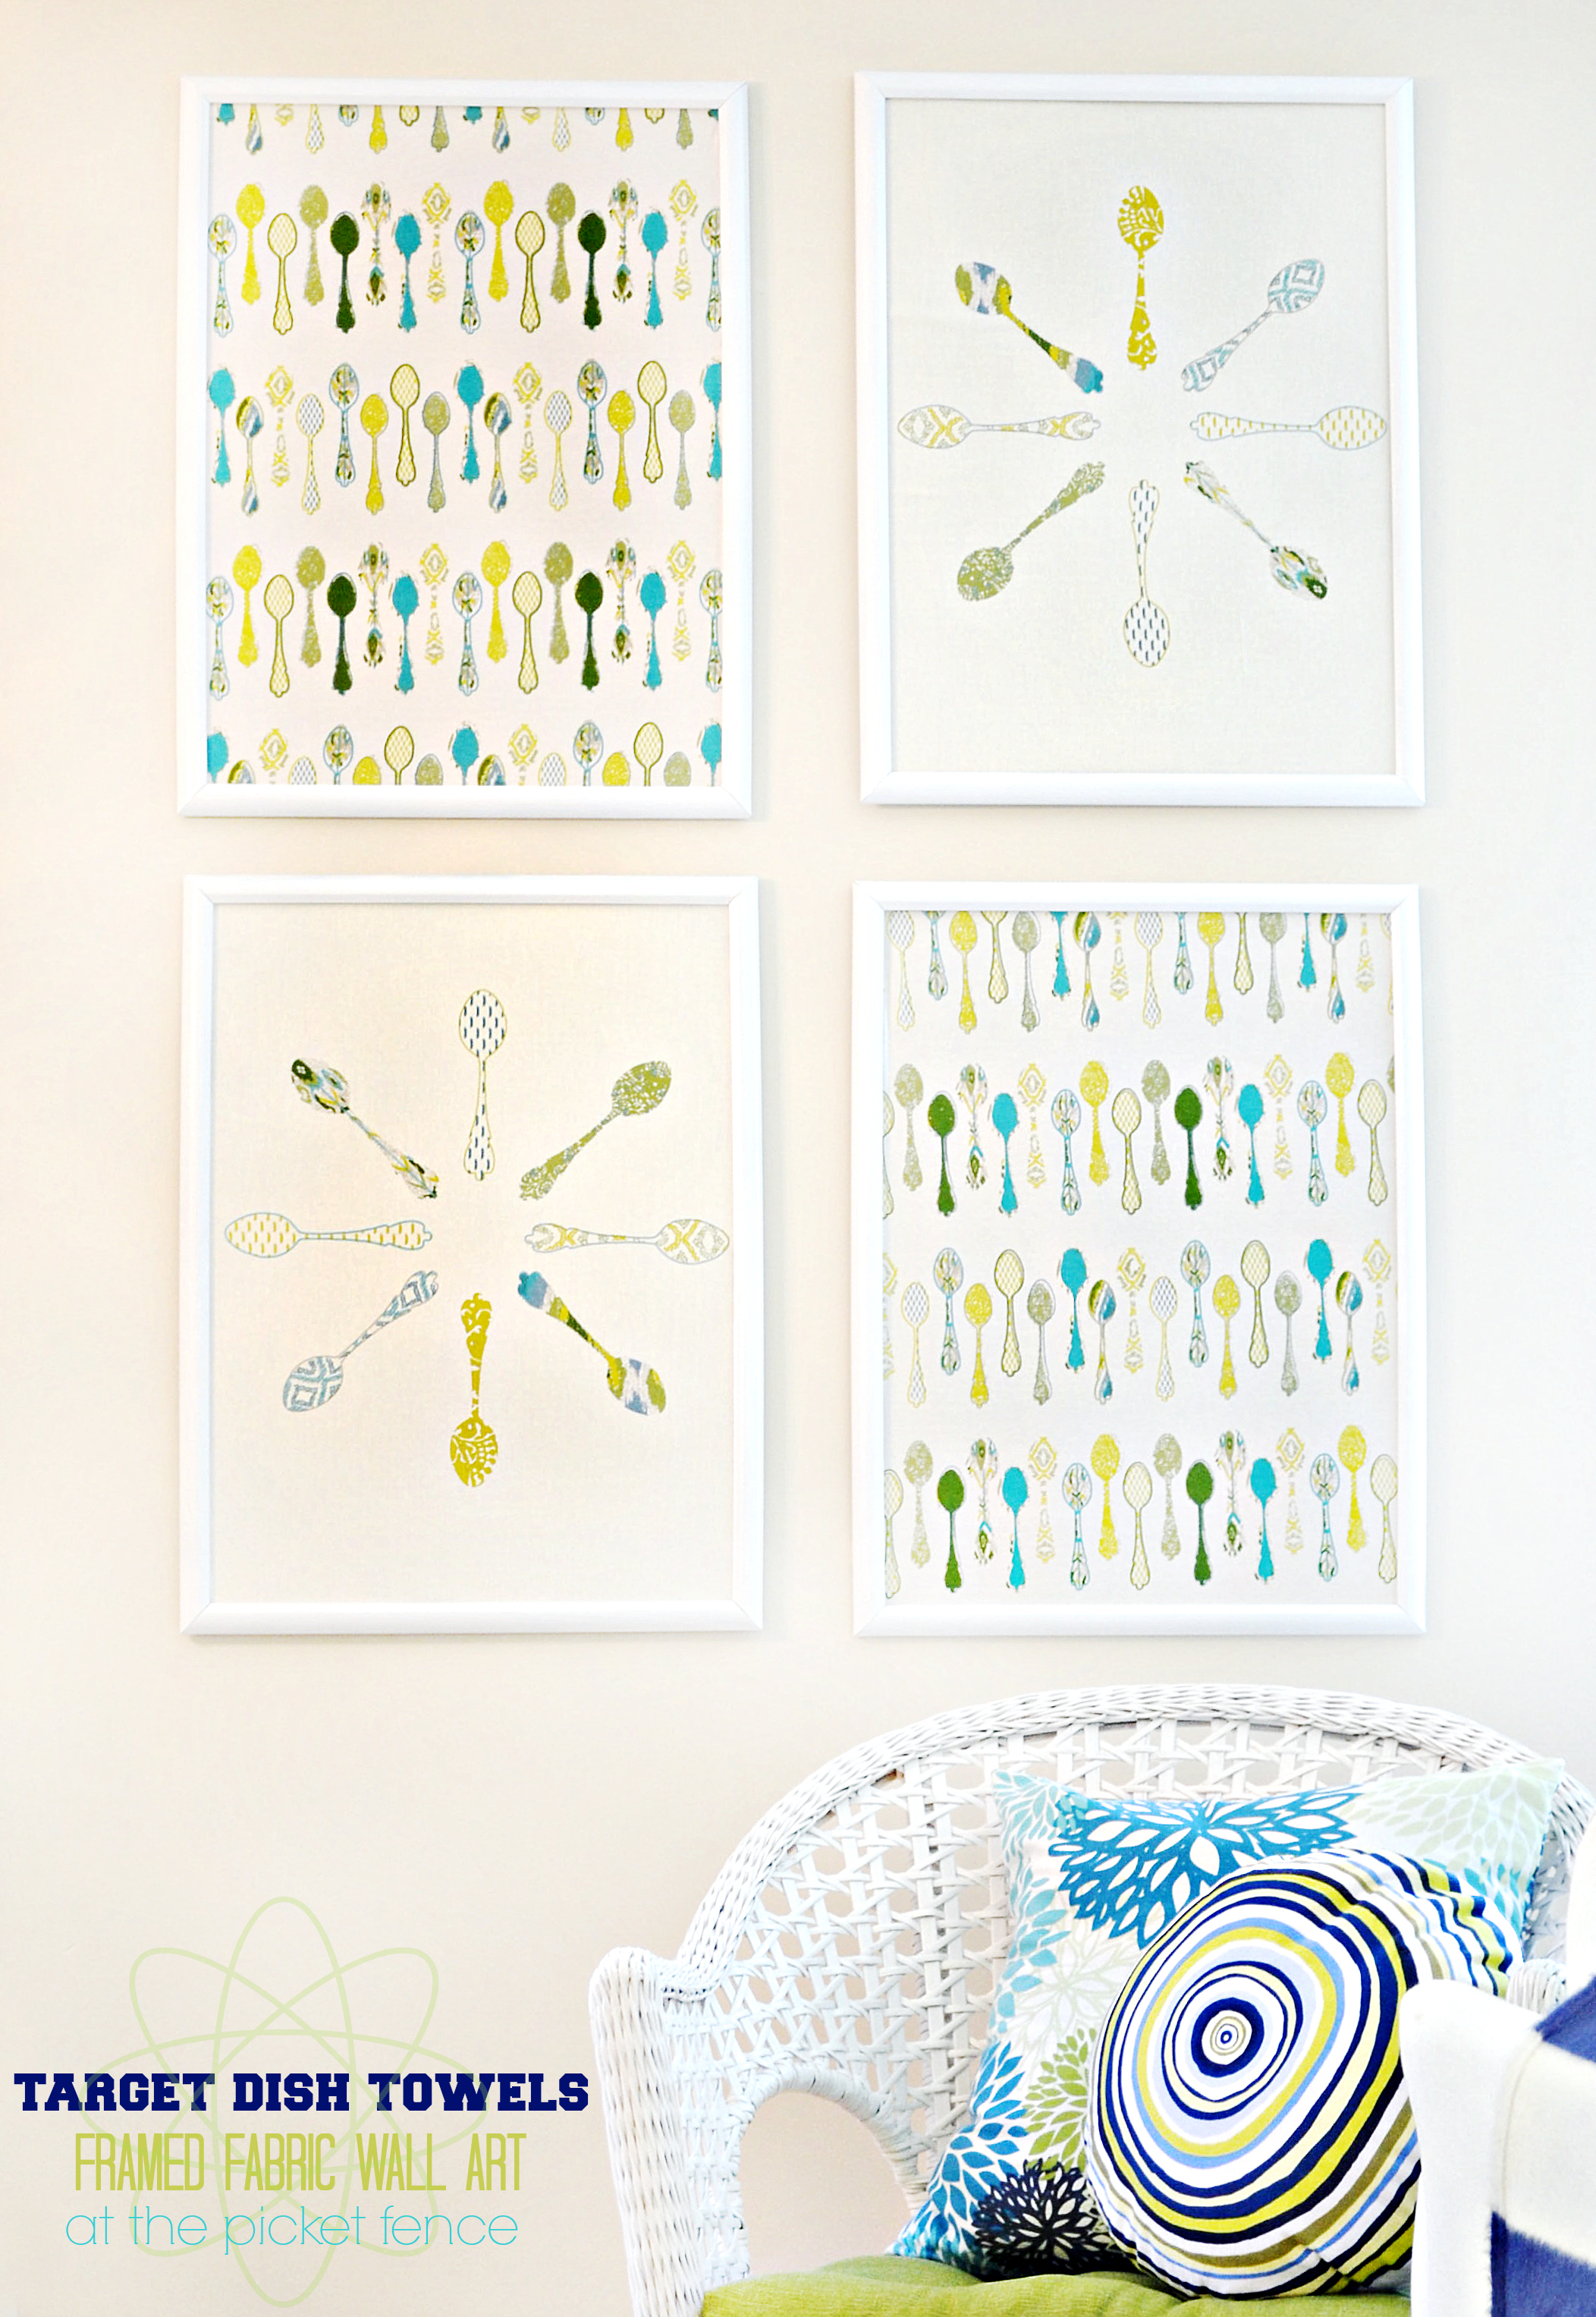 How to Make Framed Fabric Wall Art with Target Kitchen Towels